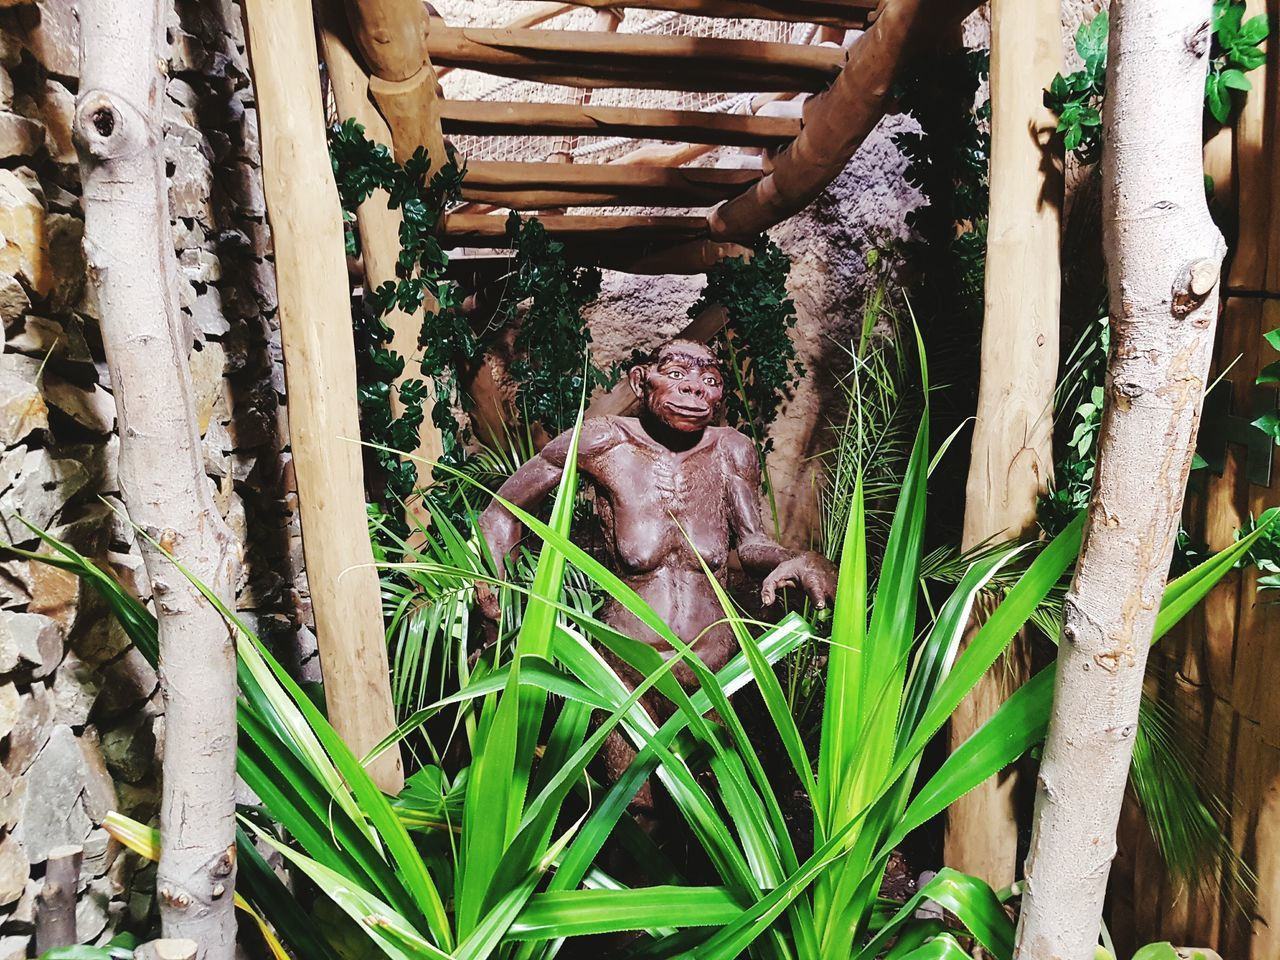 Mature Adult Plant Outdoors Grass Day Tree Eyeglasses  Adults Only One Person People Adult Human Body Part Lucy Neandertal Zoo Statue